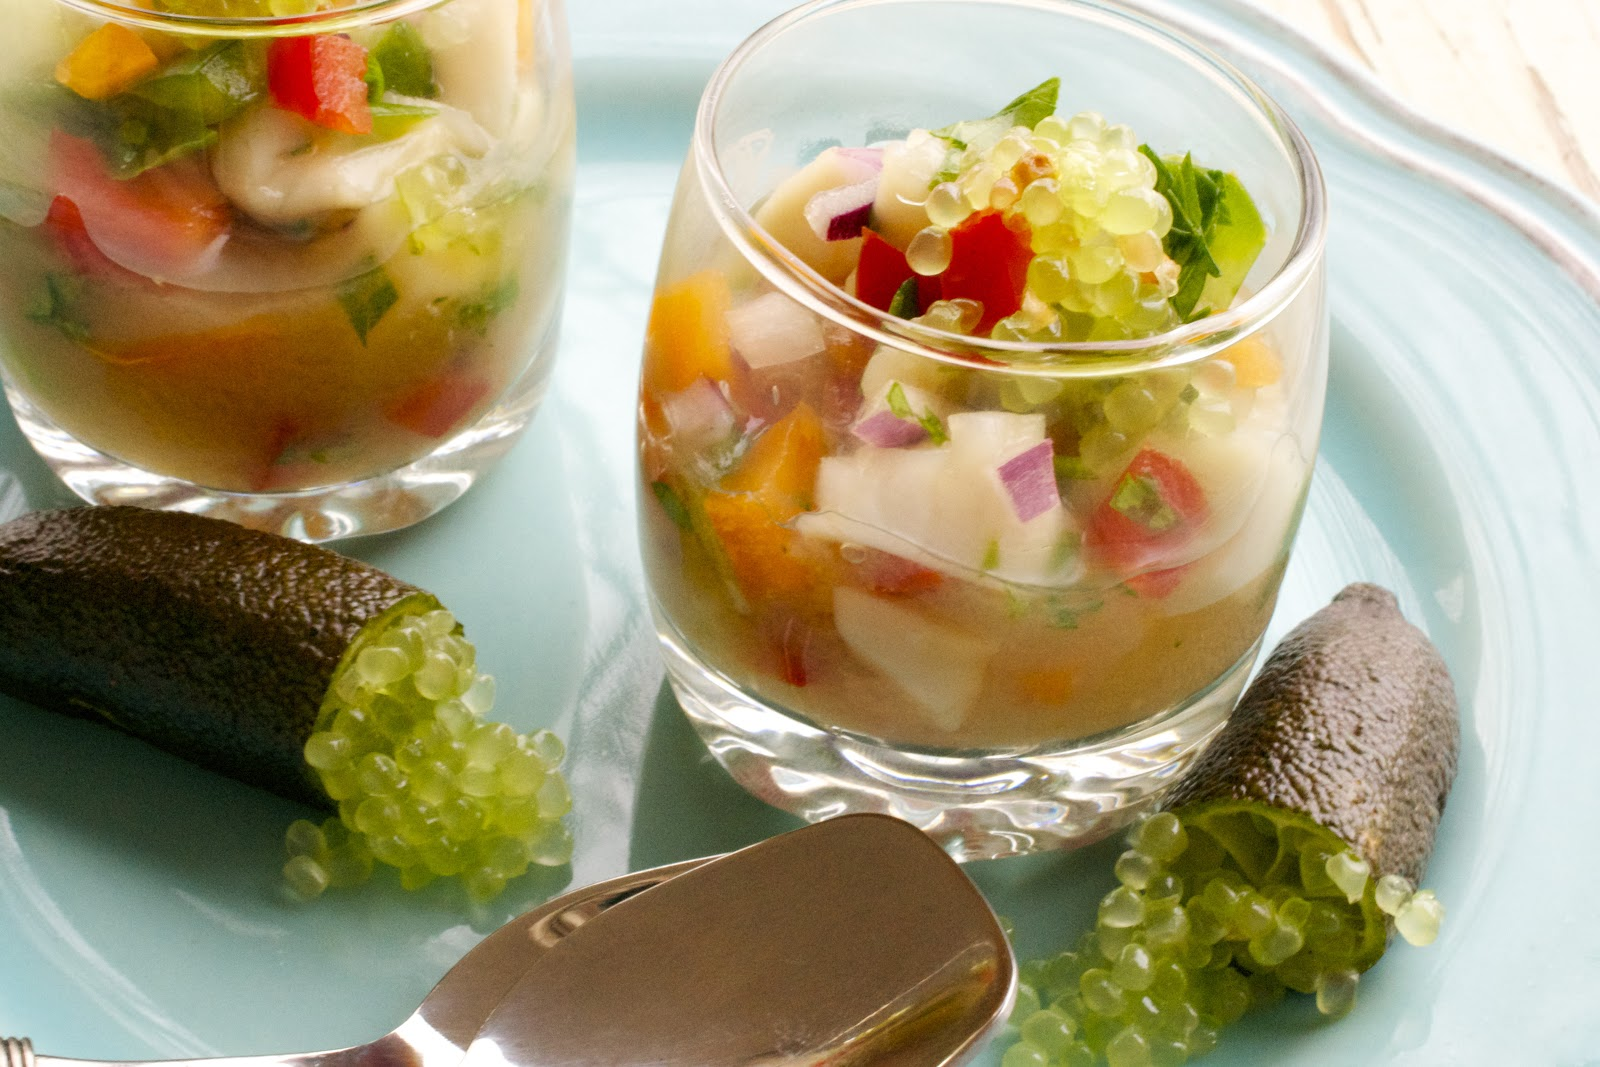 Scallop Ceviche with Finger Limes